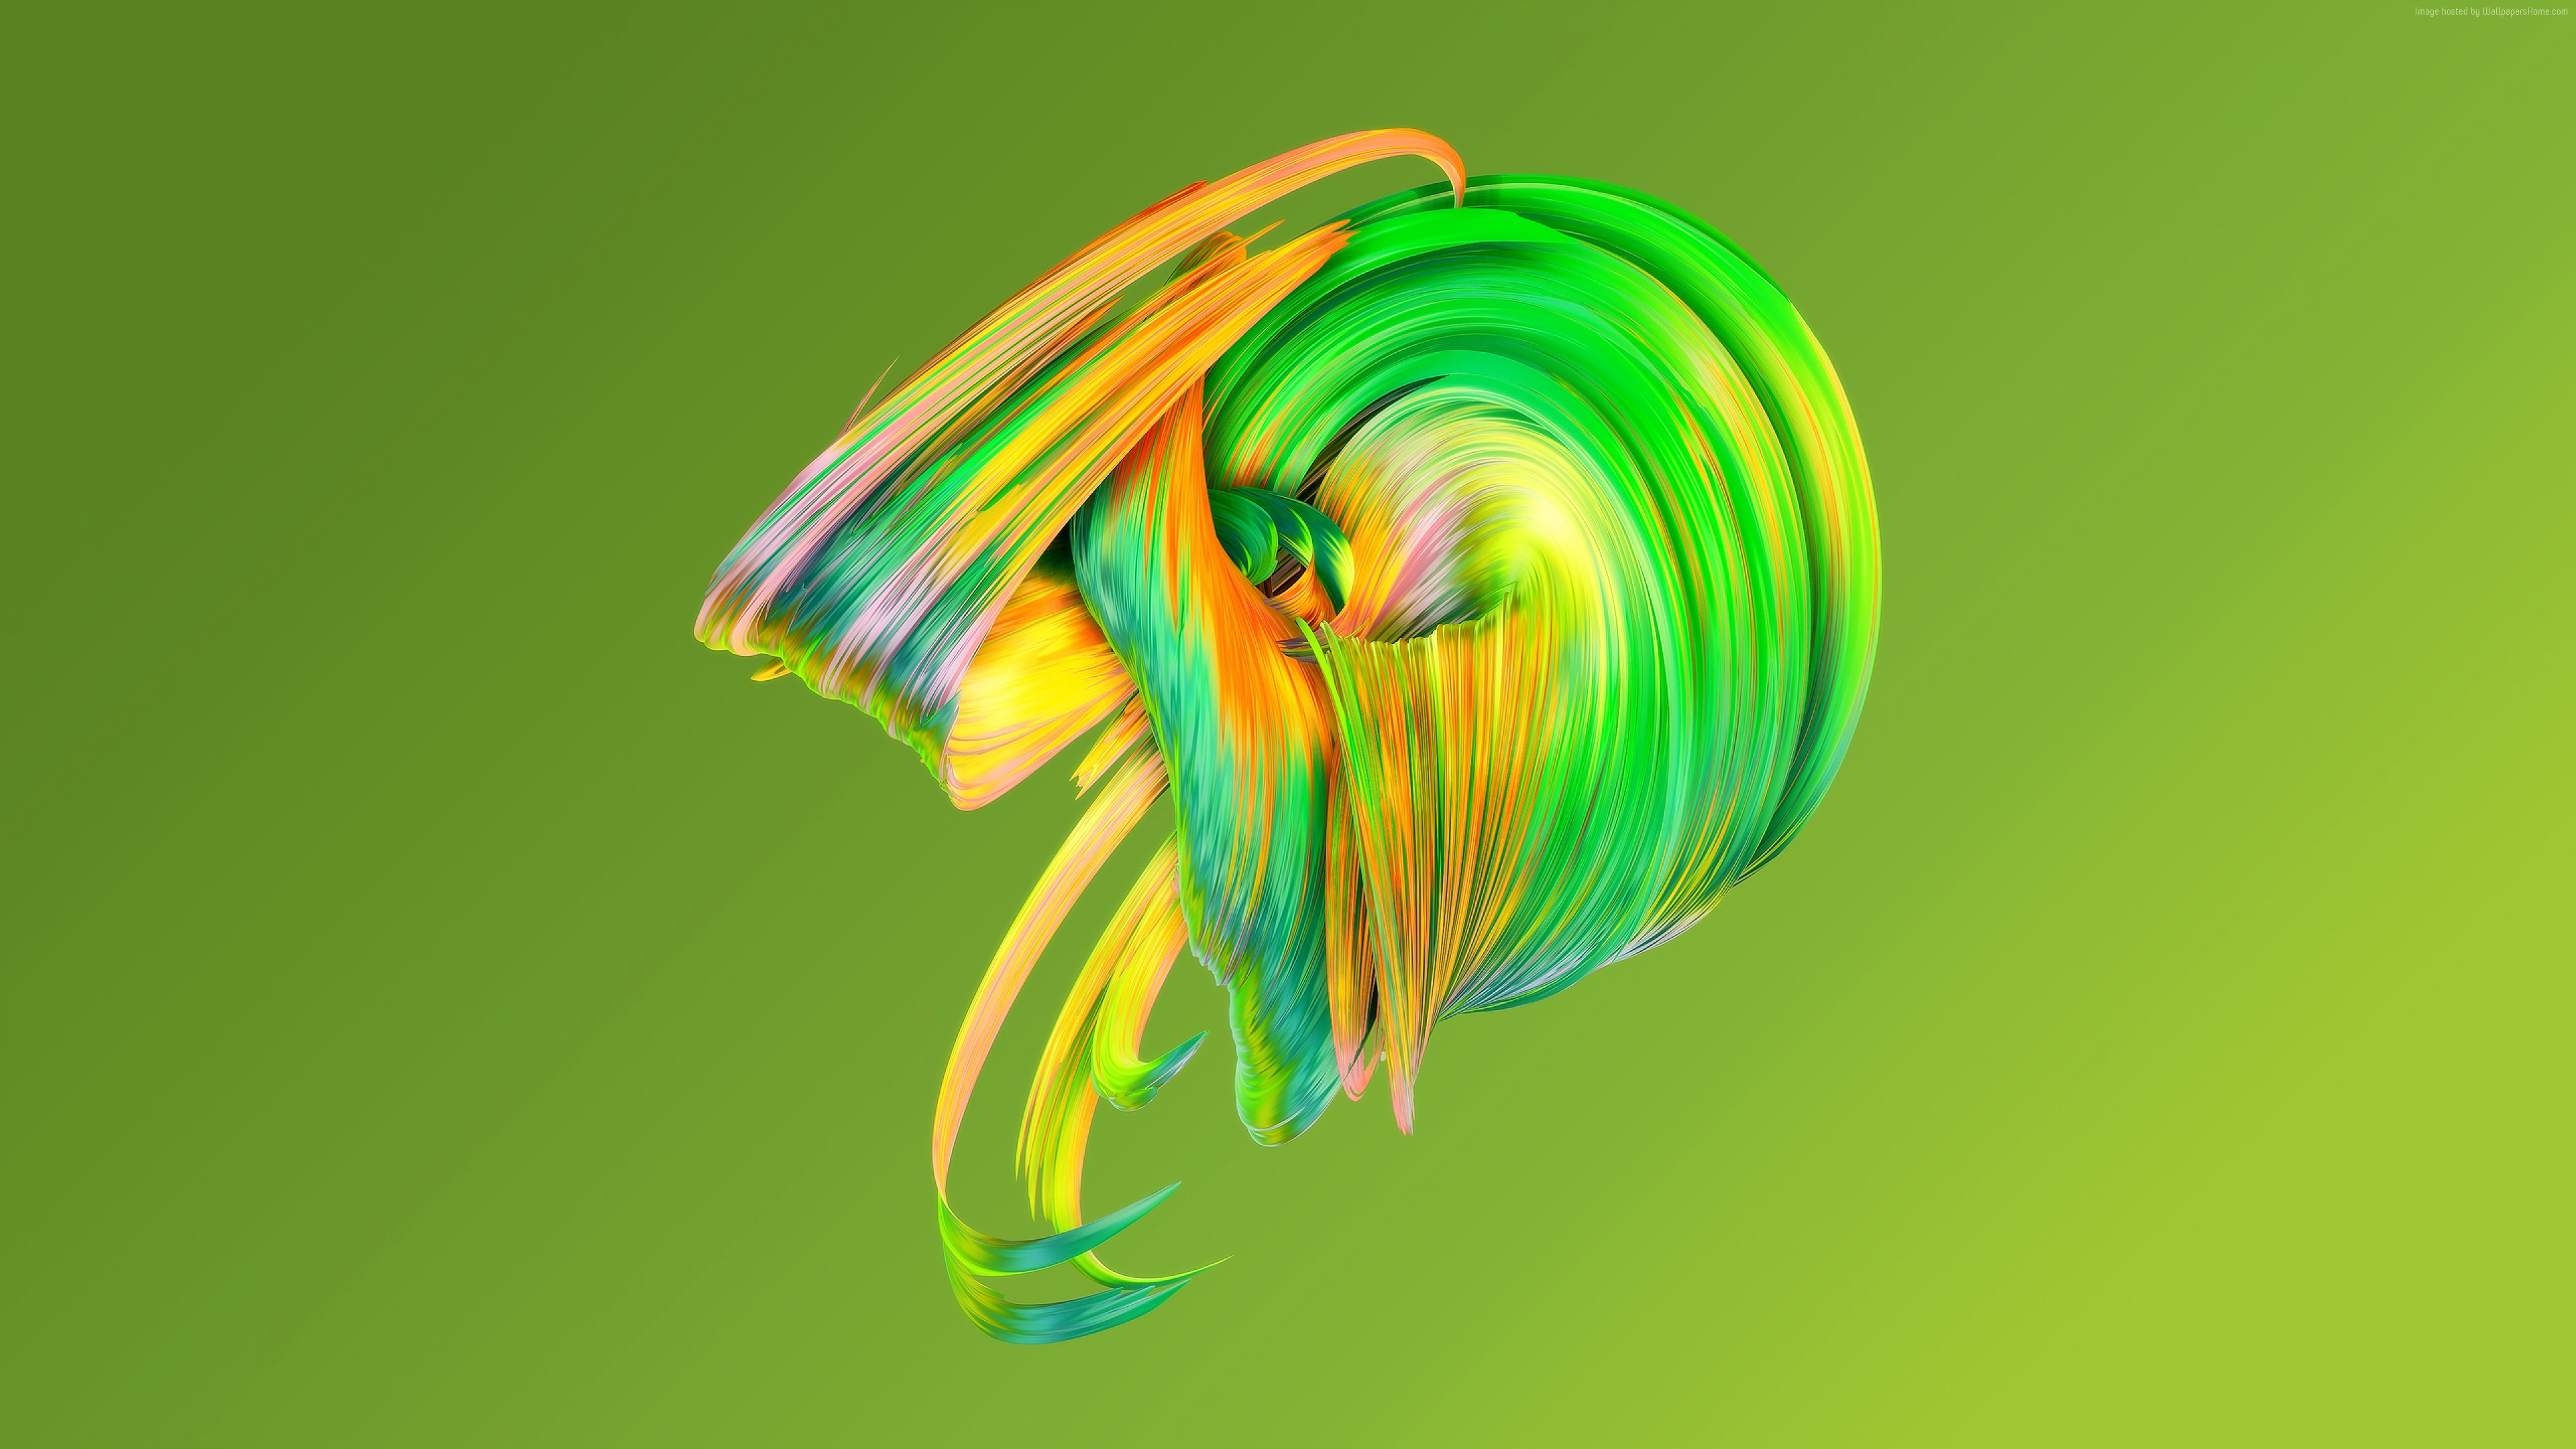 Wallpaper Hd Abstract Paintwaves Green Abstract